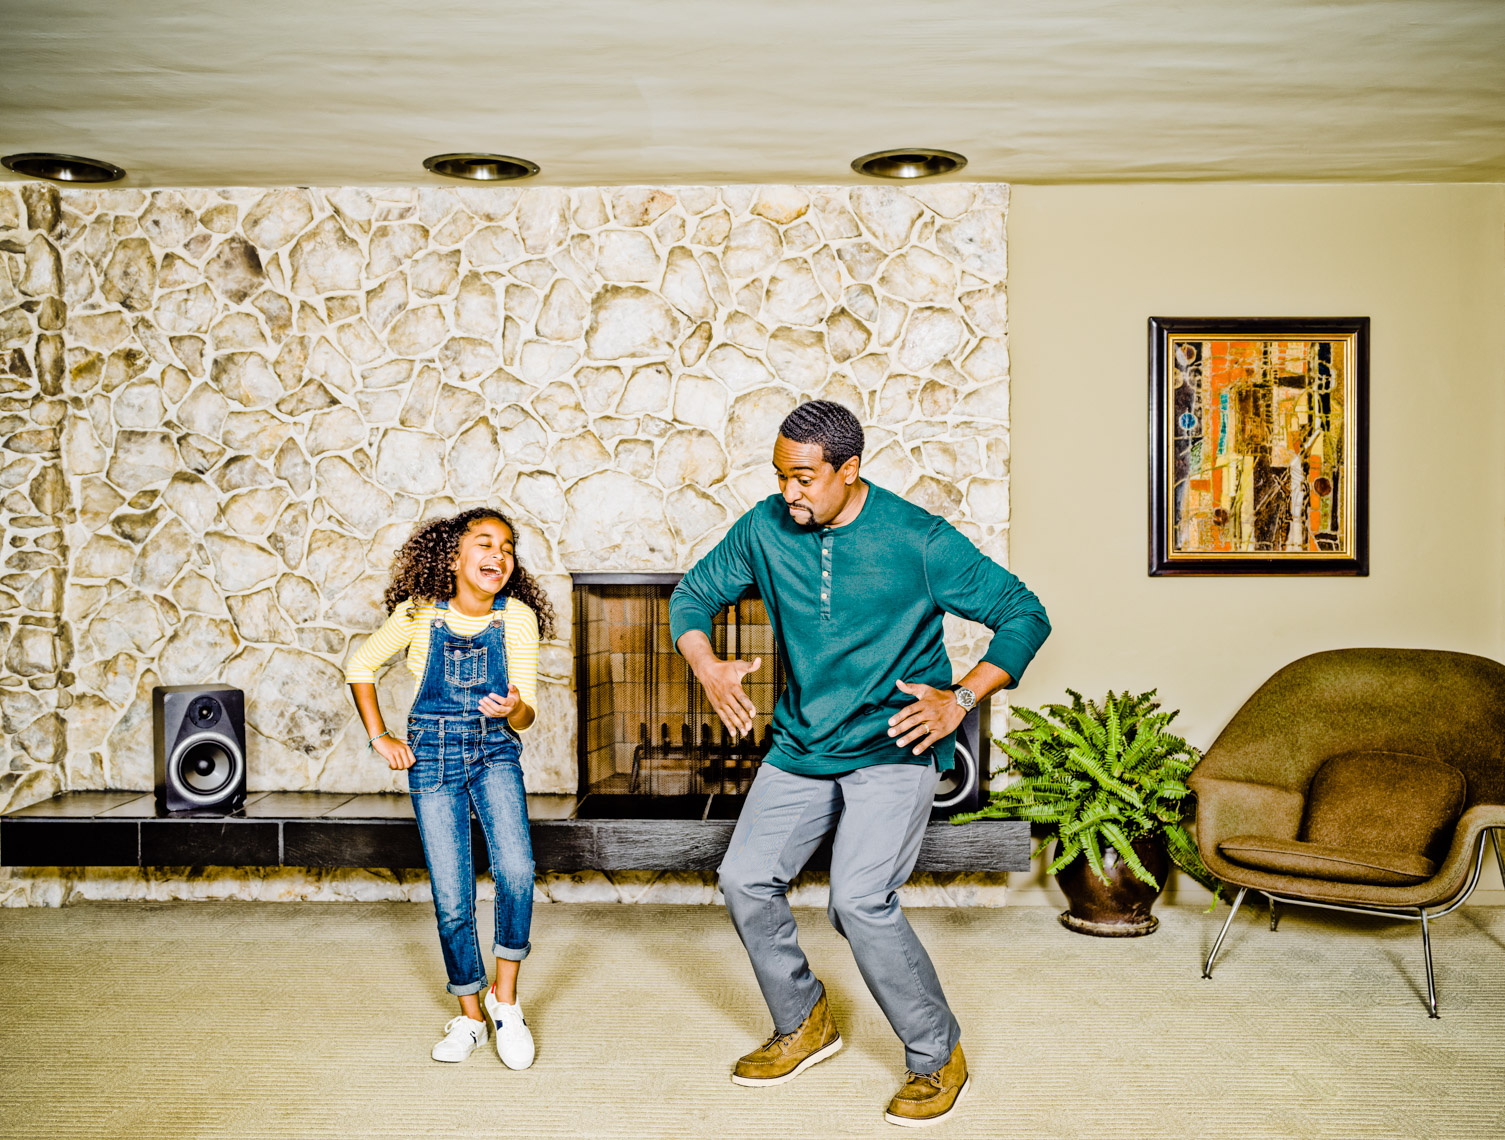 Los Angeles Photographer | Dana Hursey Photography | Quirky Photography | Dance Like a Dad 1